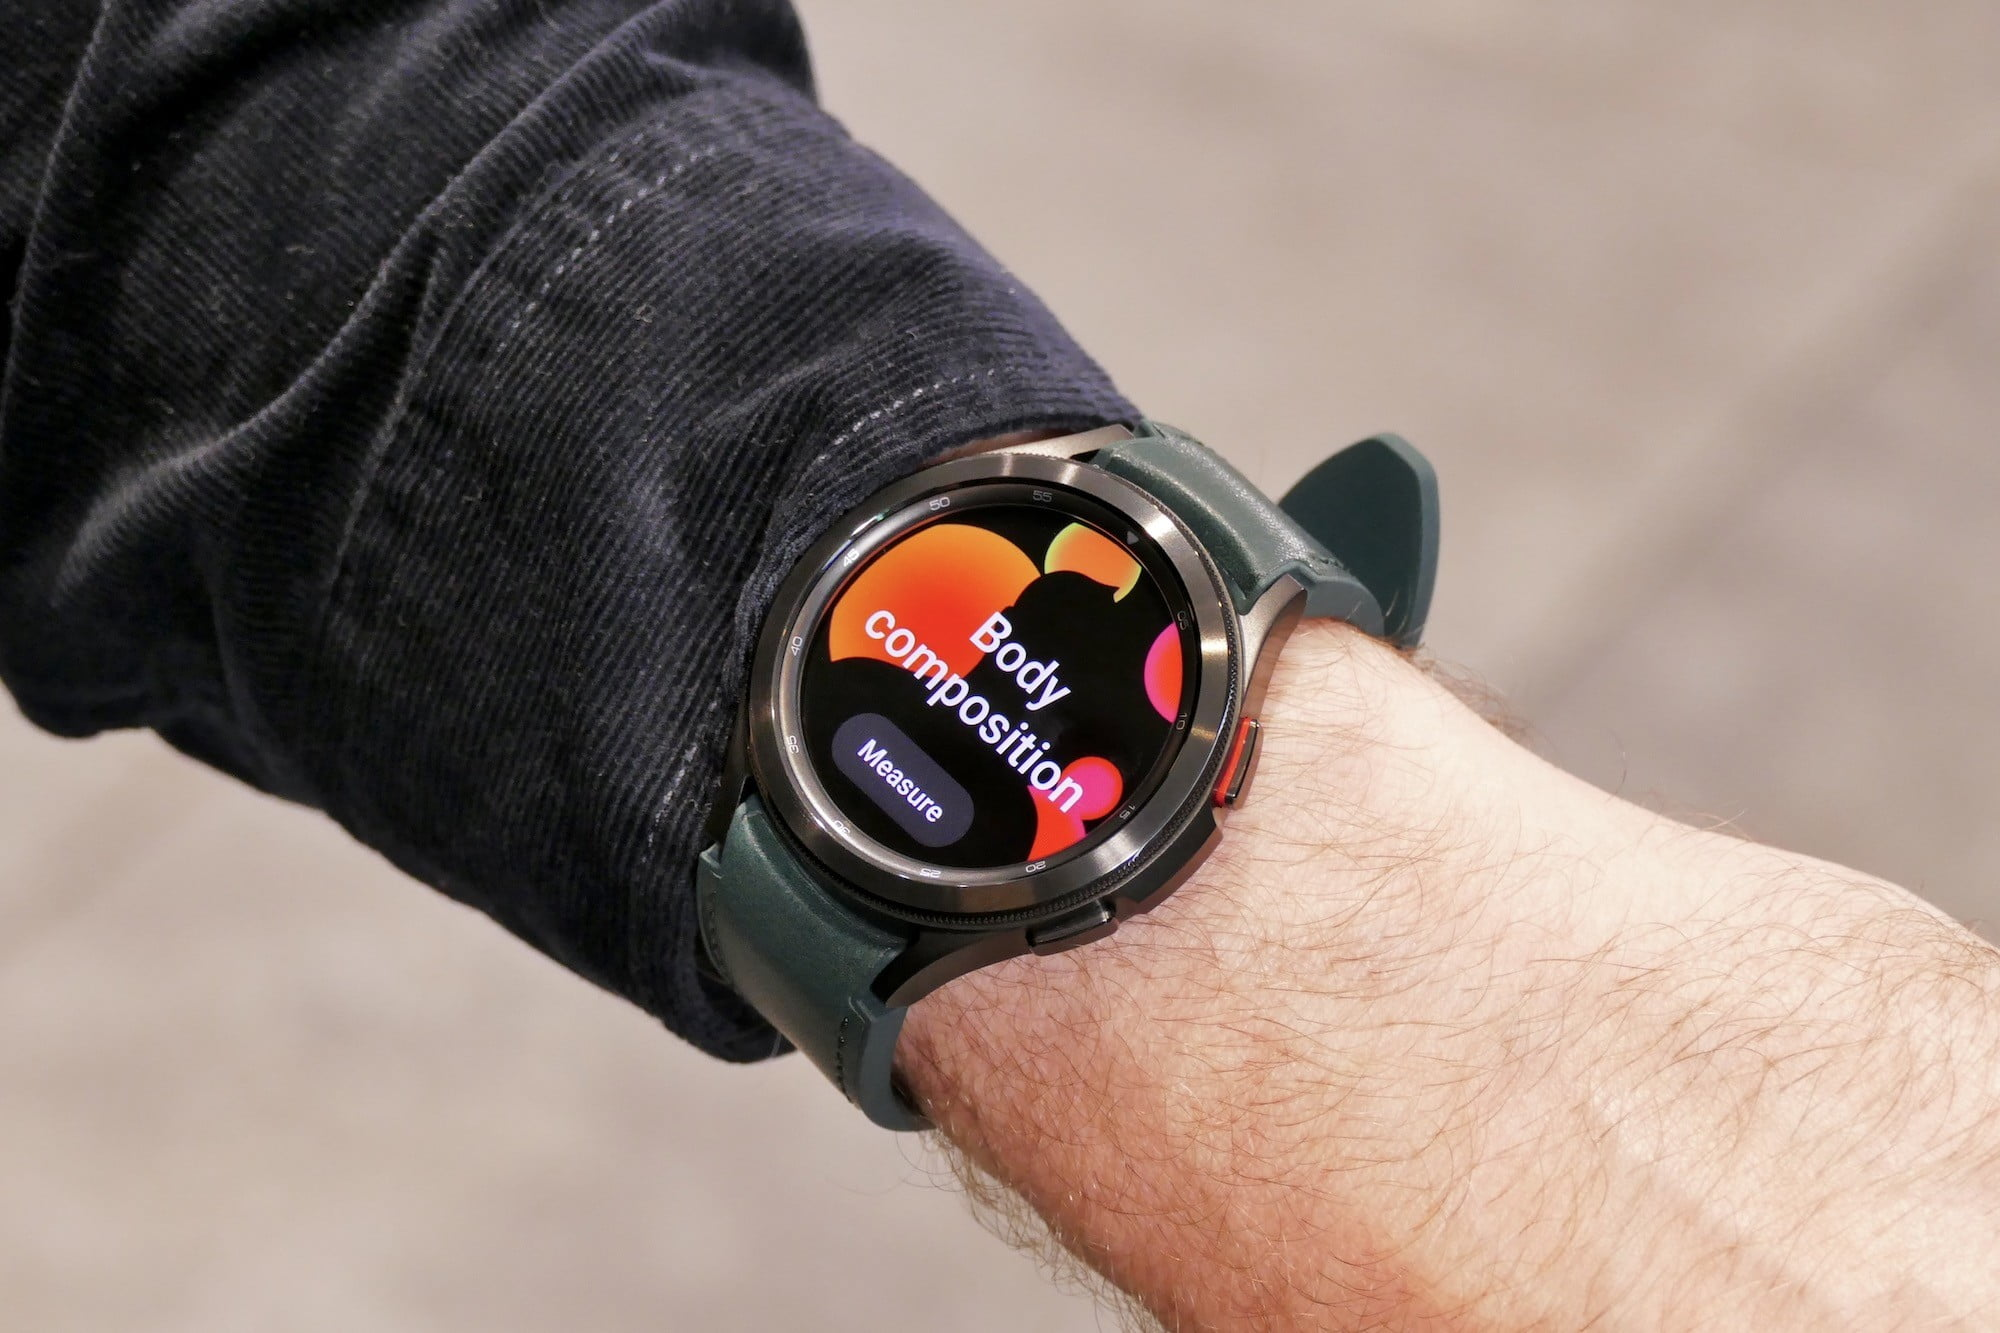 Body Composition menu screen on the Galaxy Watch 4 Classic